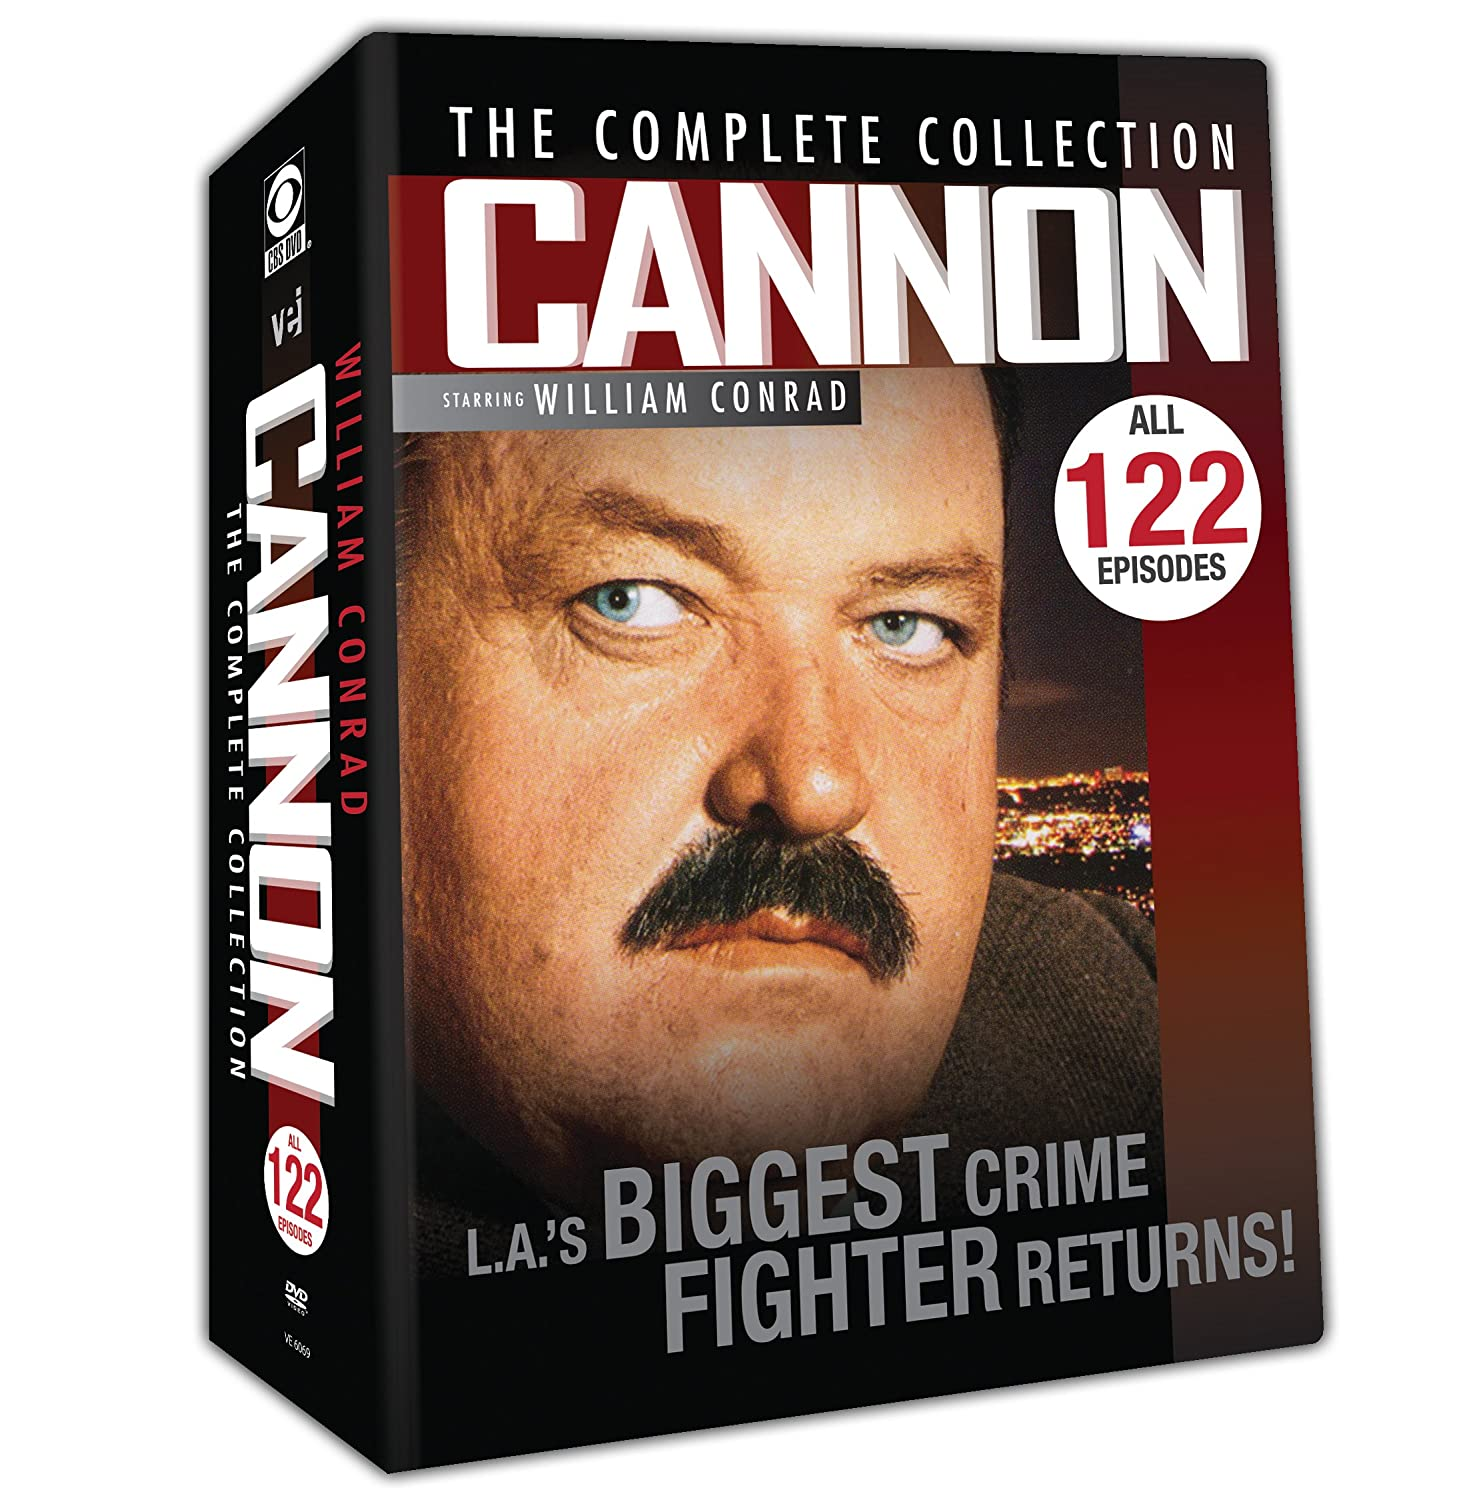 Cannon (1971 series)